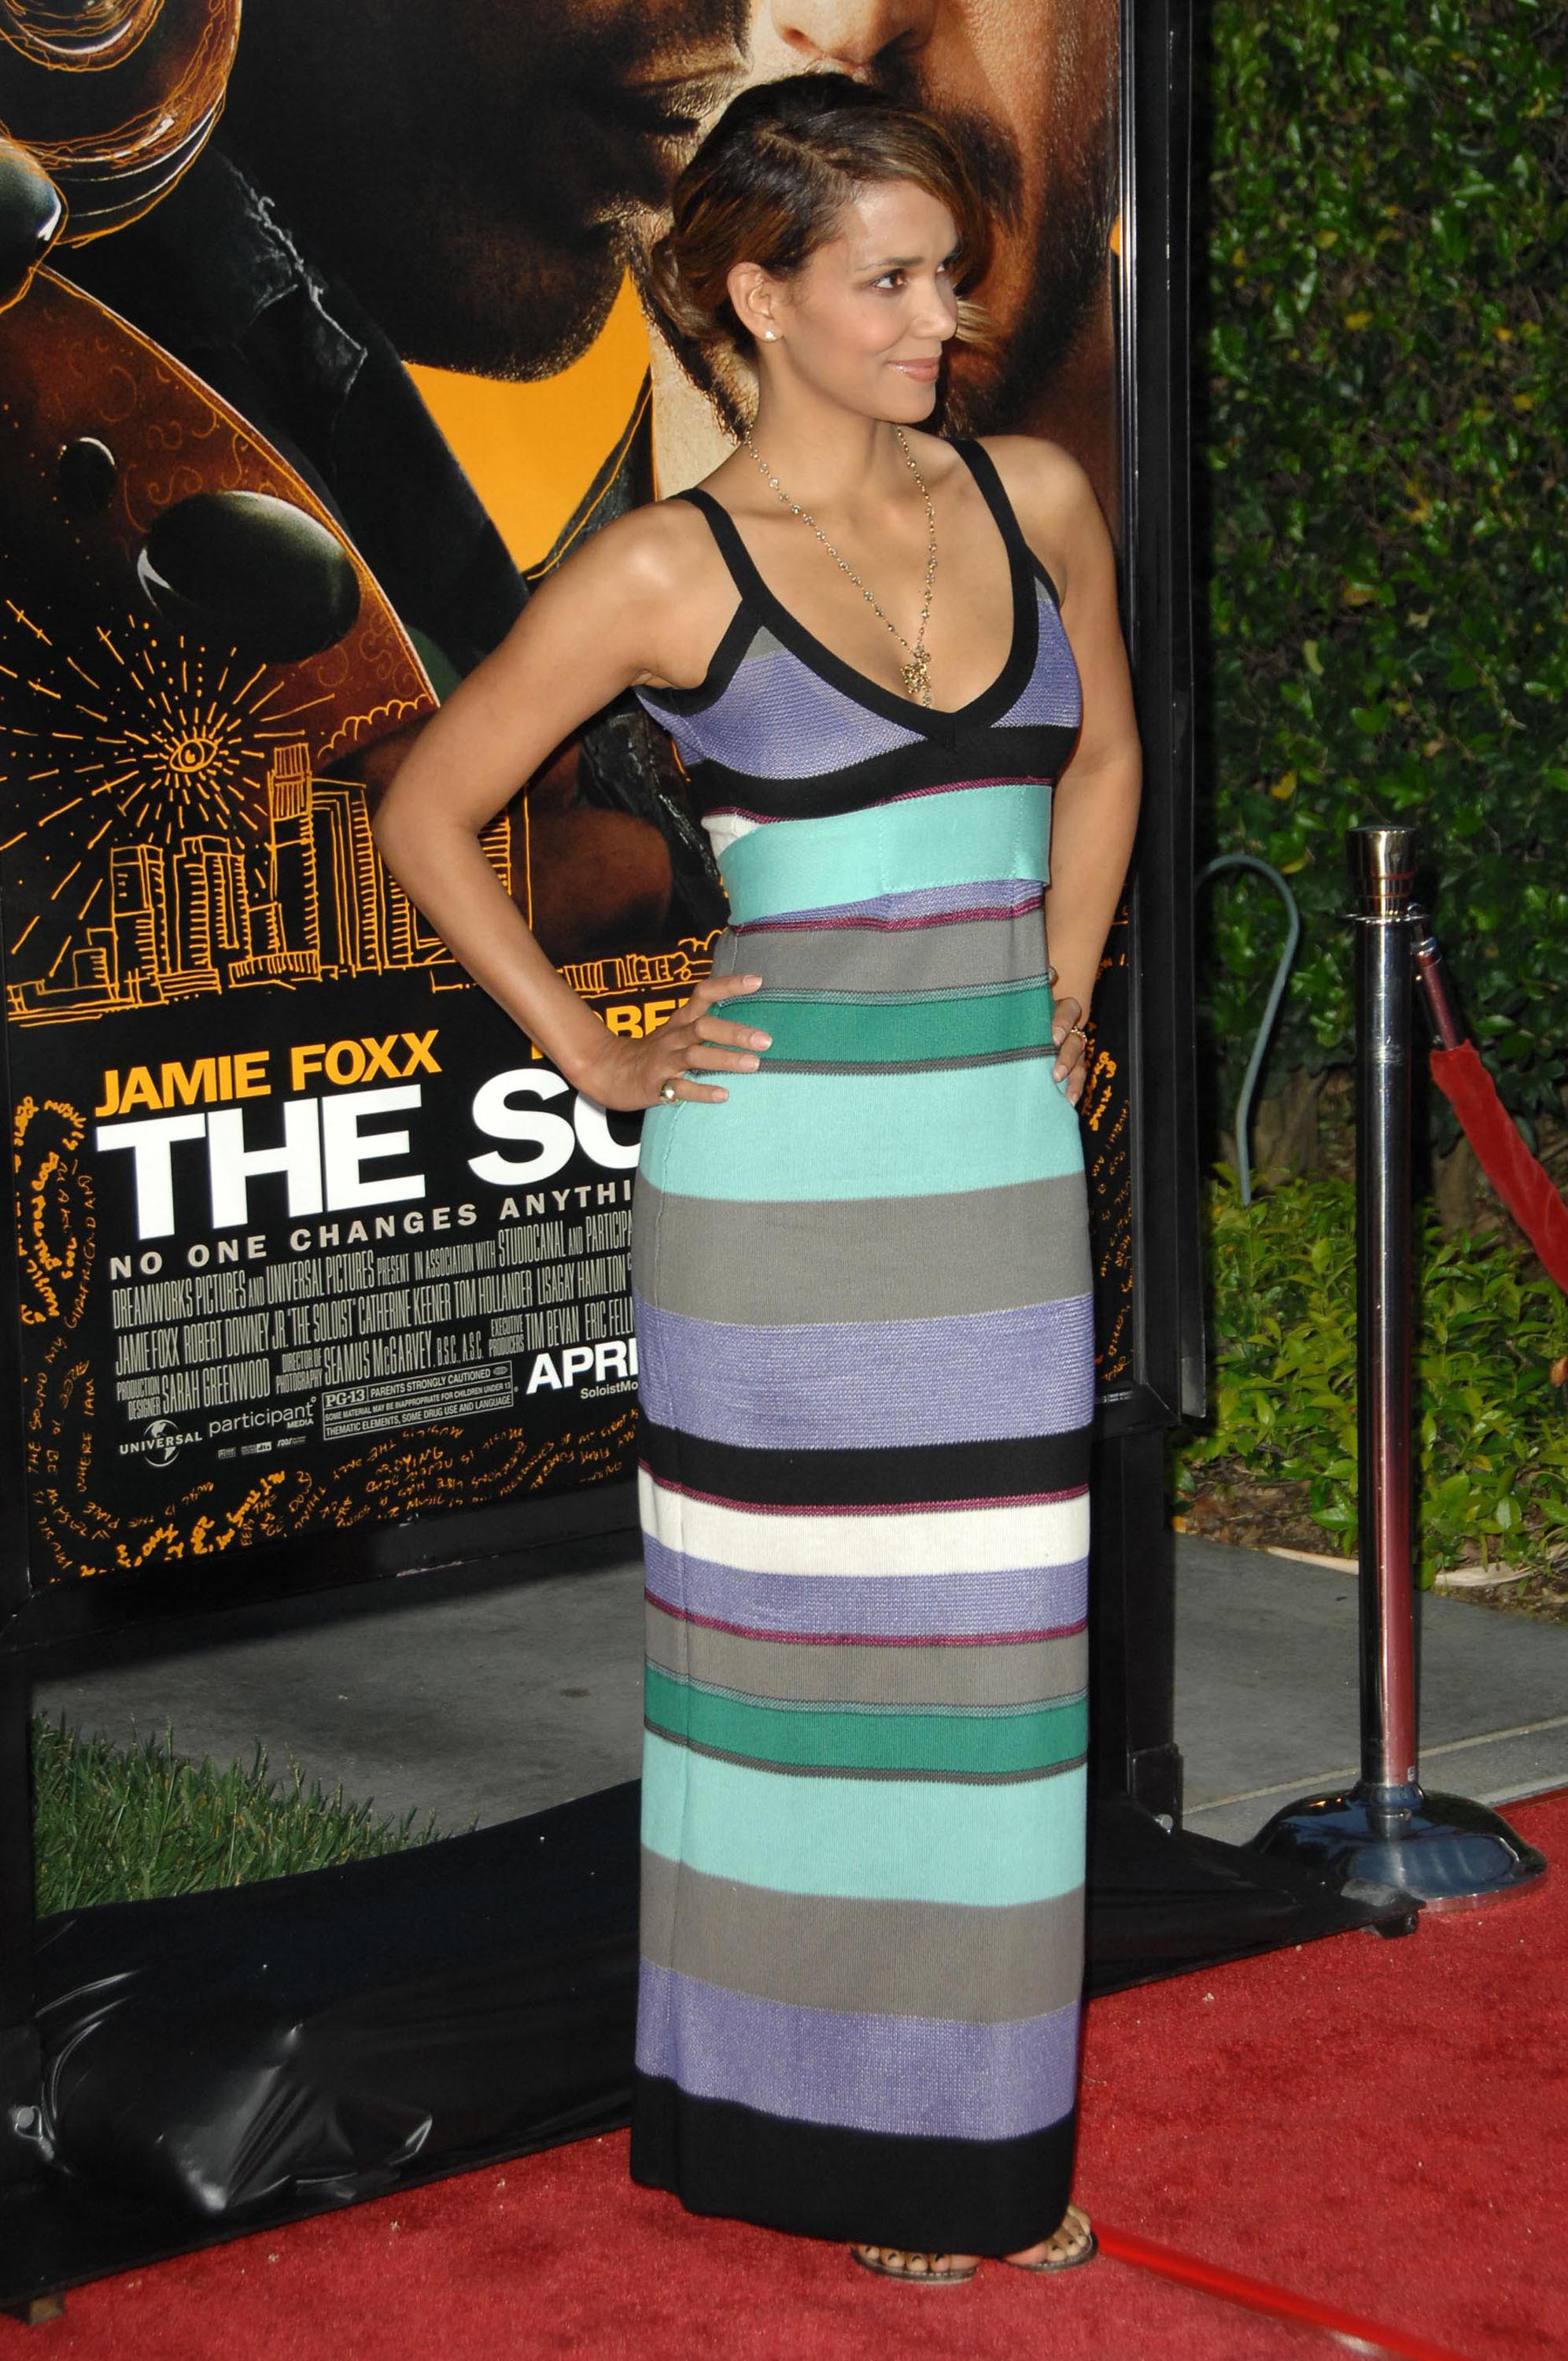 65539_Halle_Berry_The_Soloist_premiere_in_Los_Angeles_68_122_200lo.jpg